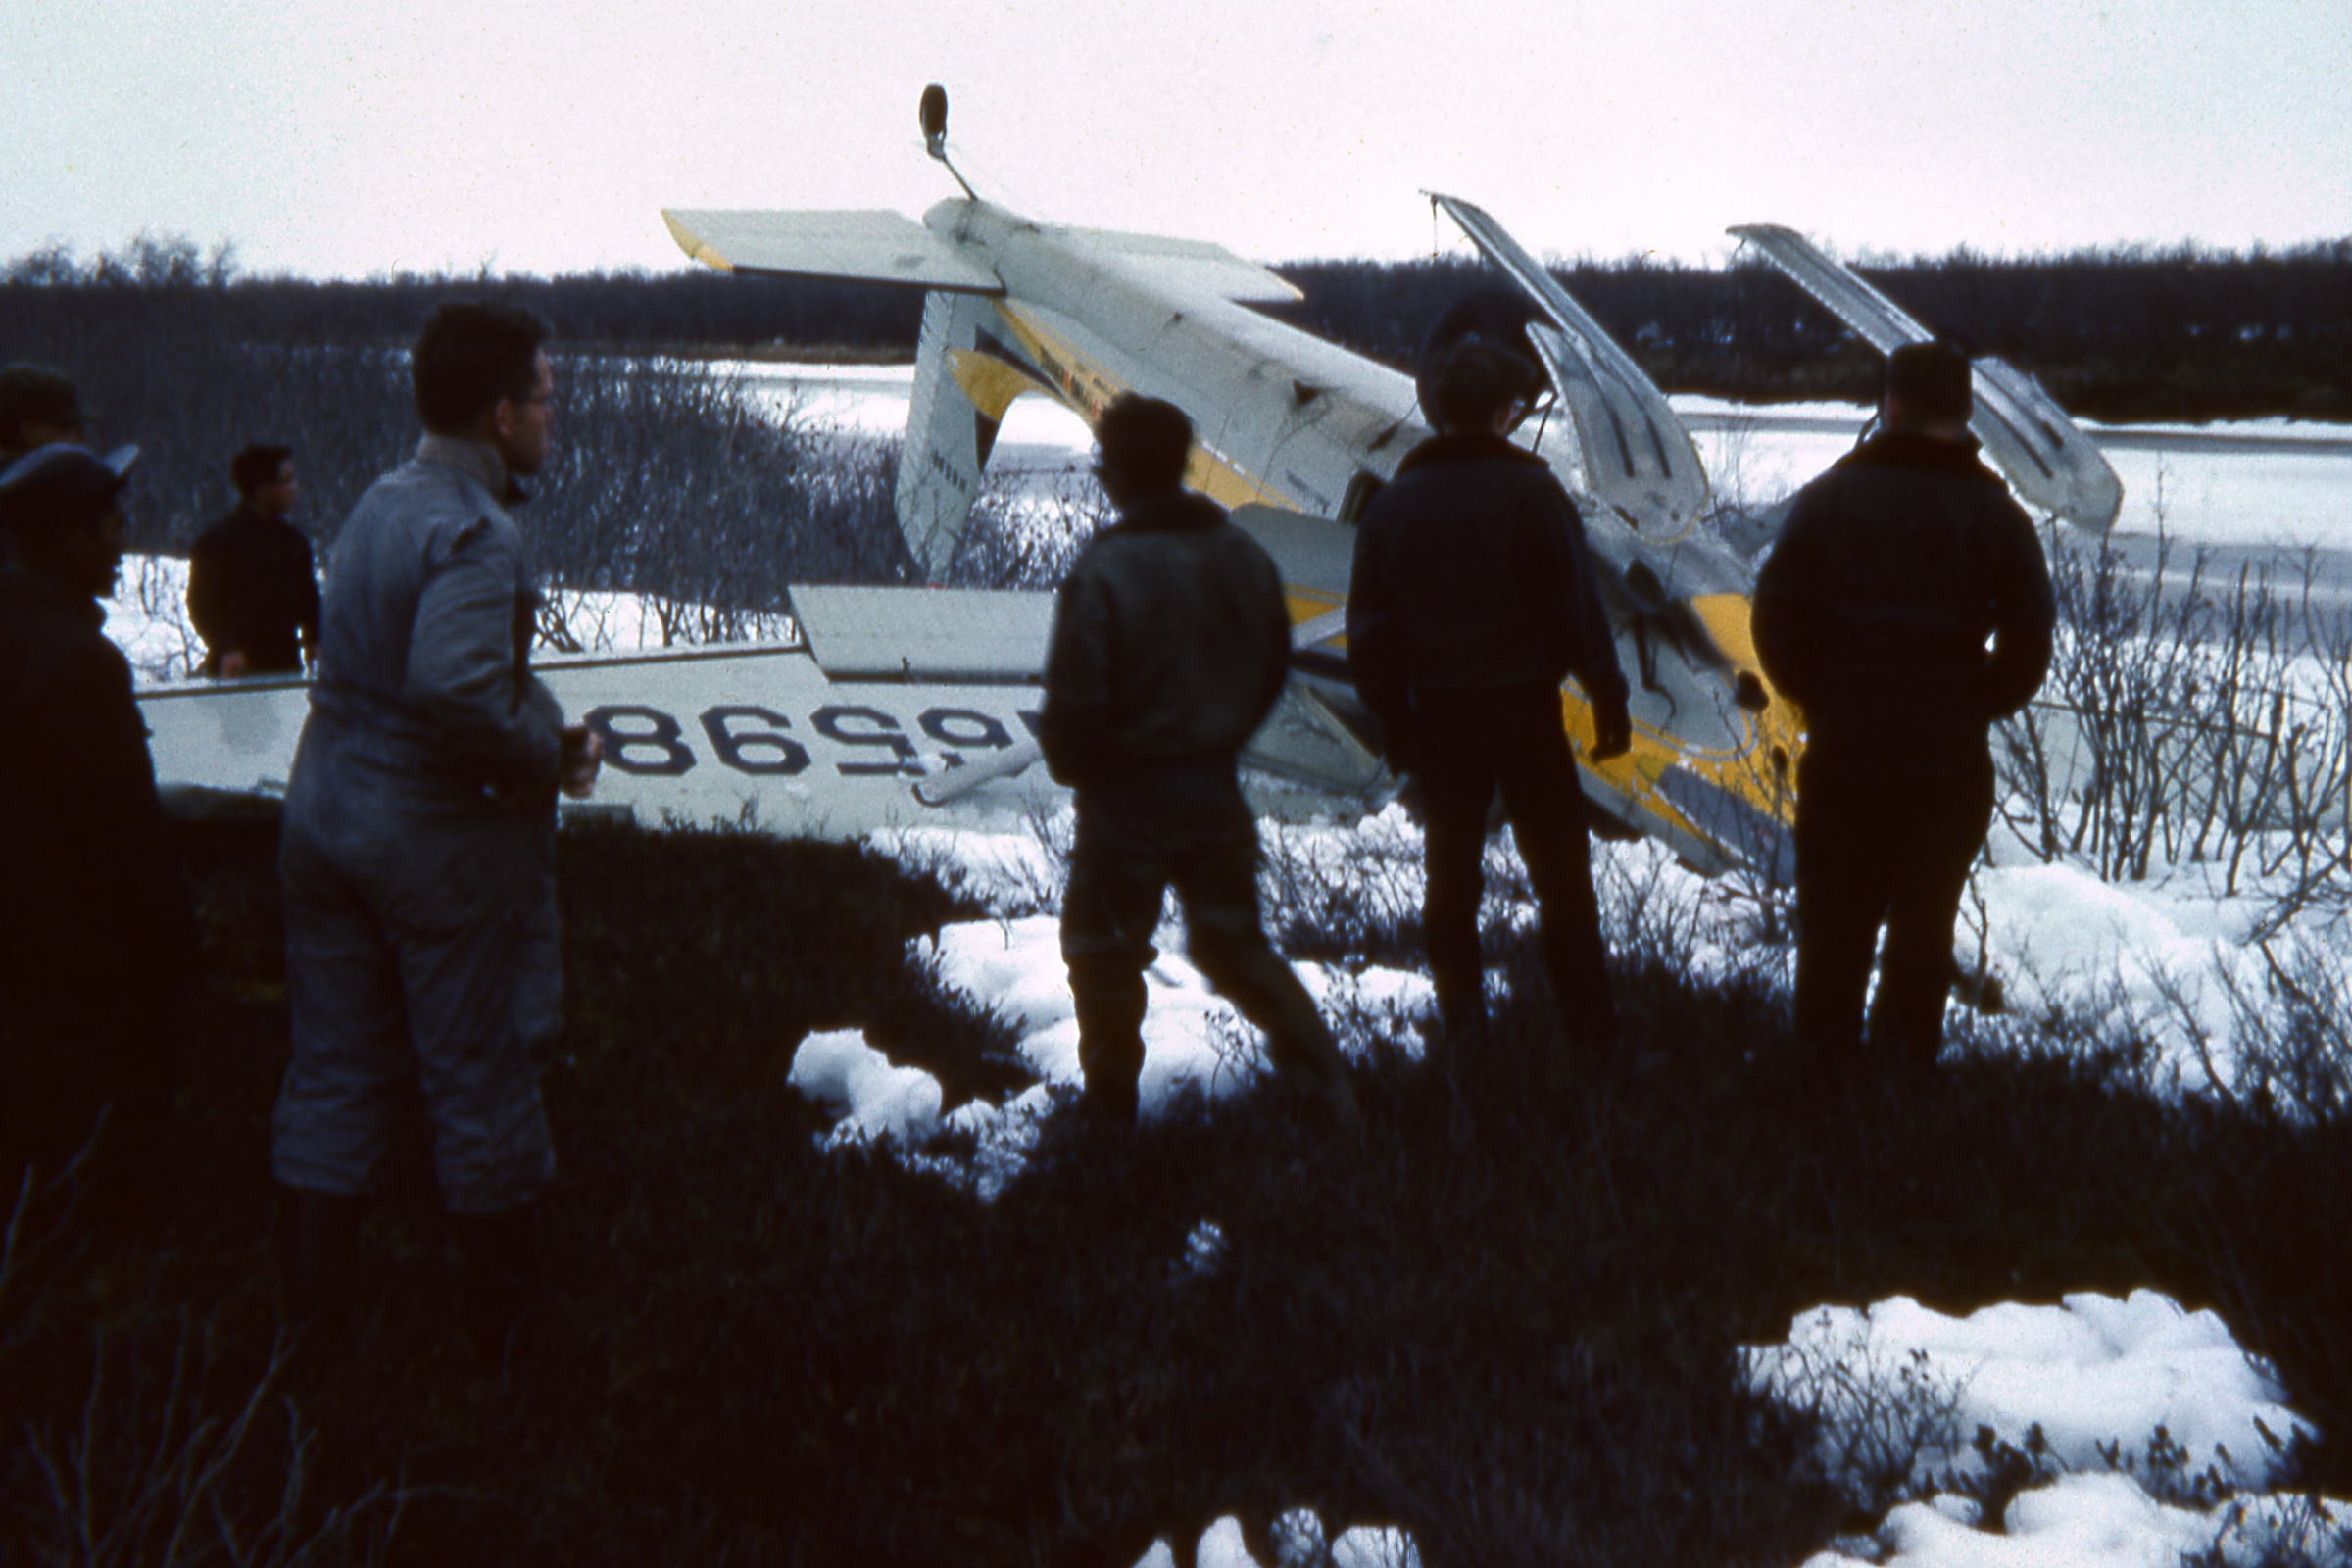 1964 - Ketchum Air accident